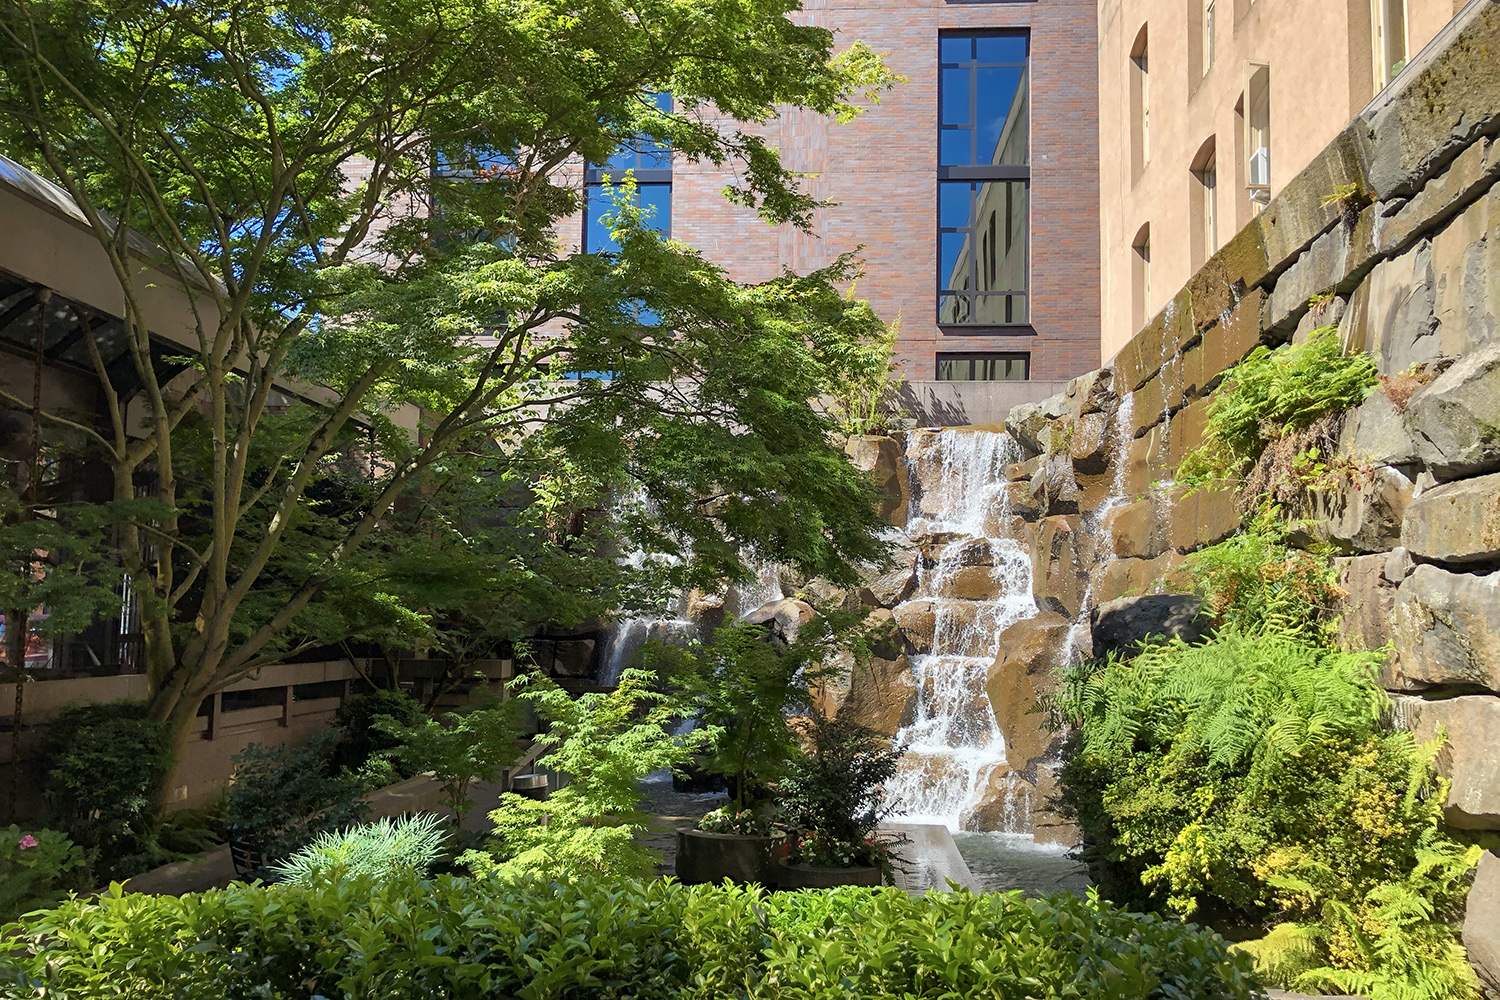 Hidden between Pioneer Square's busy streets, Waterfall Garden Park offers a small respite for 9-to-5'ers or tourists to pop in for a sip of coffee beside an urban, 22-foot waterfall. Fun fact: The garden is also known as UPS Park as it was built in 1978 to commemorate the original United Parcel Service headquarters building downtown. (Image: Rachael Jones / Seattle Refined)